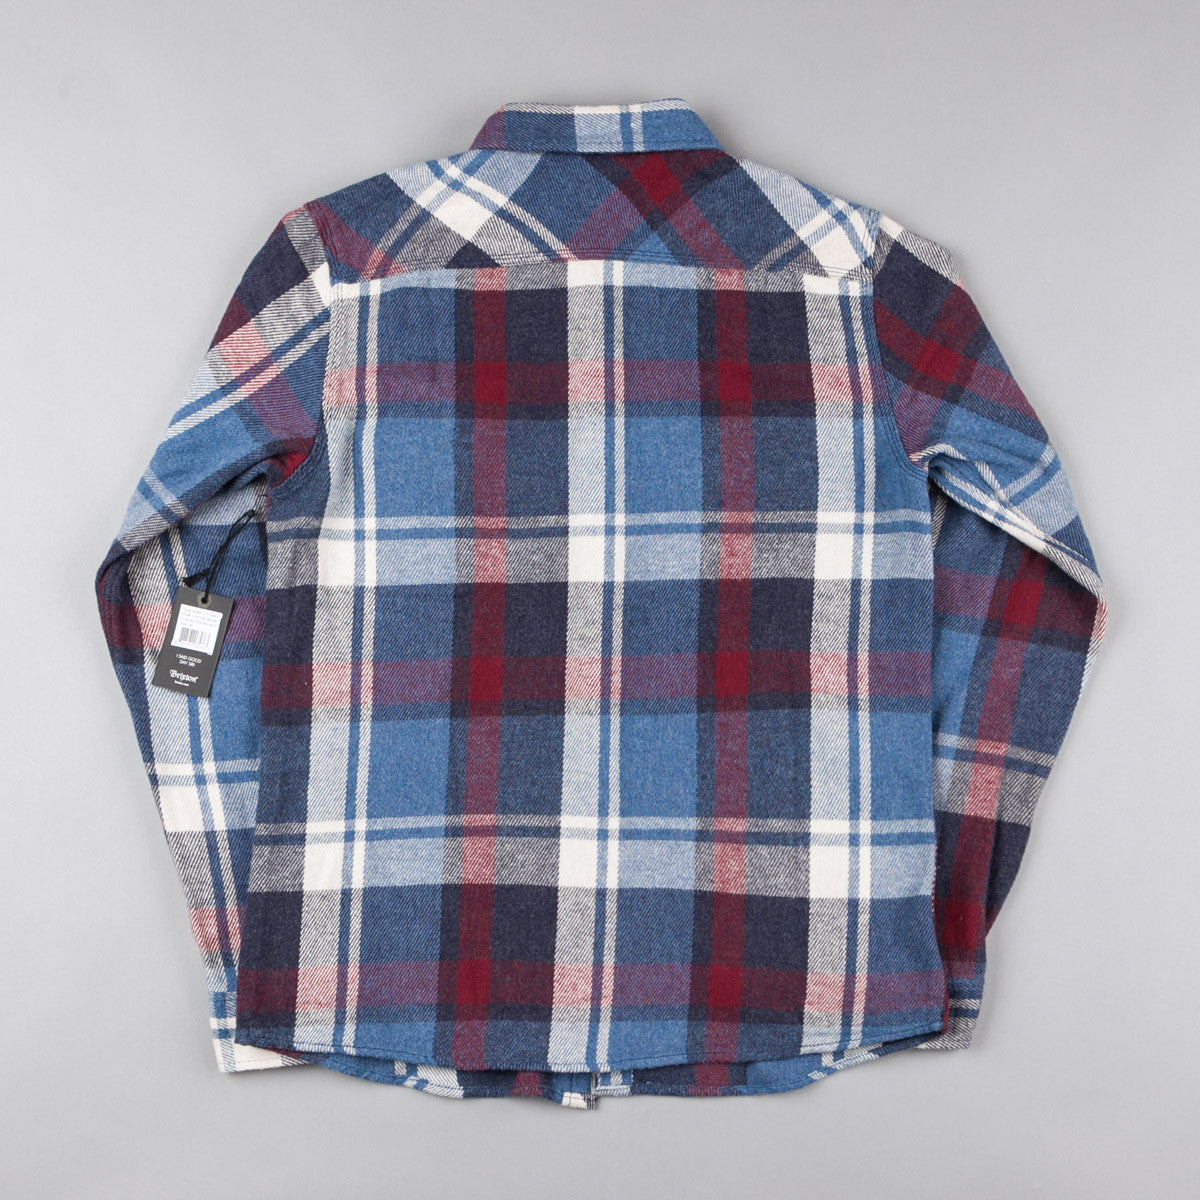 Brixton Bowery Flannel Shirt - Blue / Burgundy